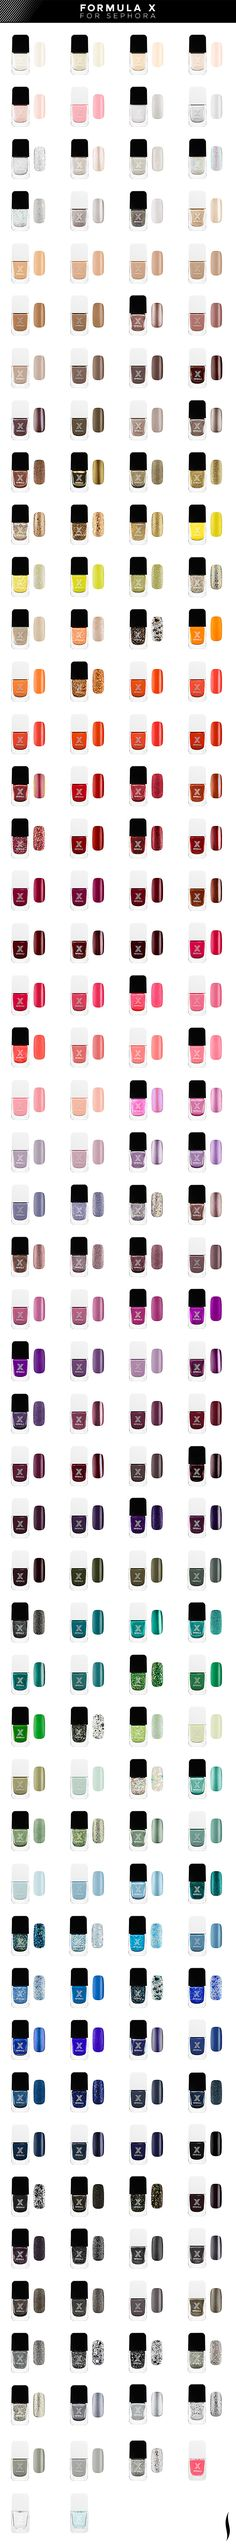 Introducing the next in nail: Formula X for Sephora. More than 190 shades. I have tried this polish & I love it. It is long lasting, wears well. In my opinion, it ranks with OPI!